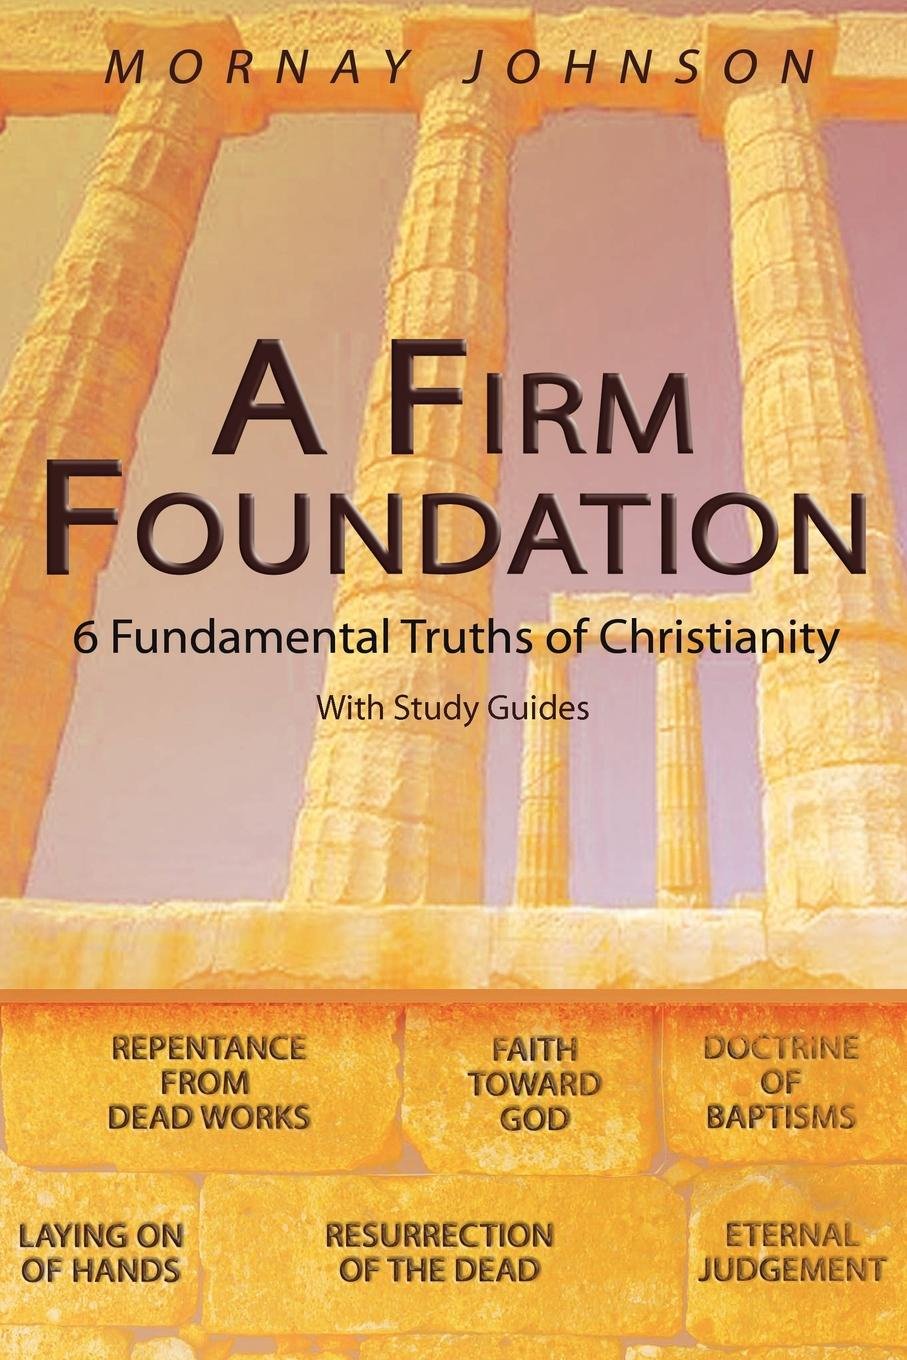 MORNAY JOHNSON A FIRM FOUNDATION. 6 Fundamental Truths of Christianity kenneth gullett a firm foundation from genesis chapters 1 3